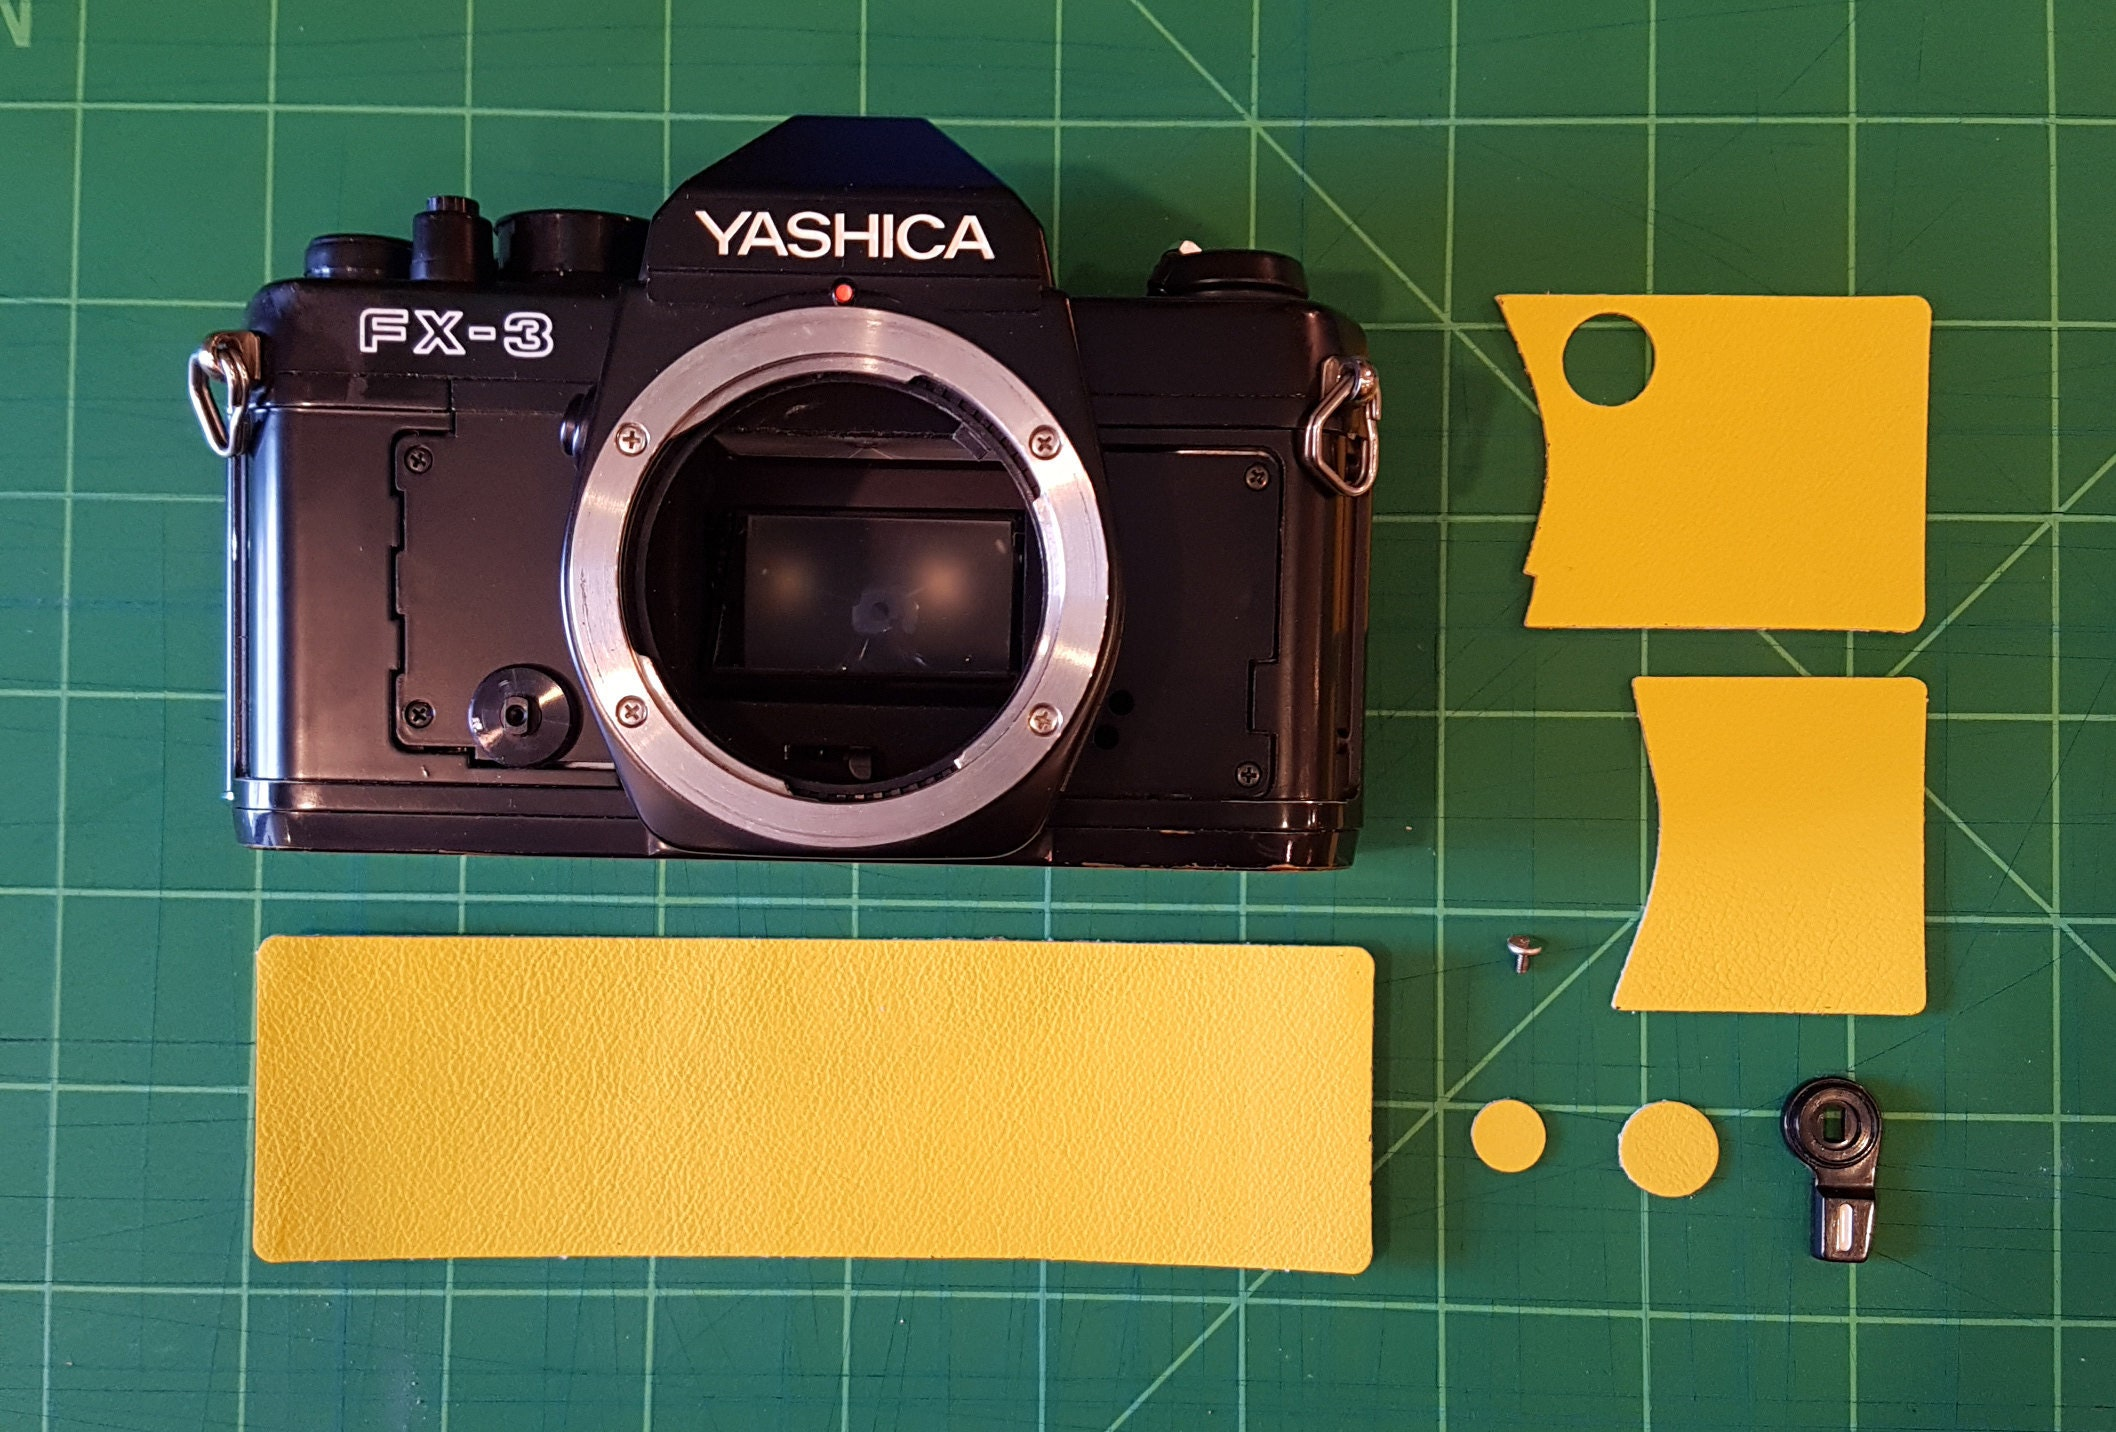 All the pieces laid out, ready to recover this awesome Yashica SLR